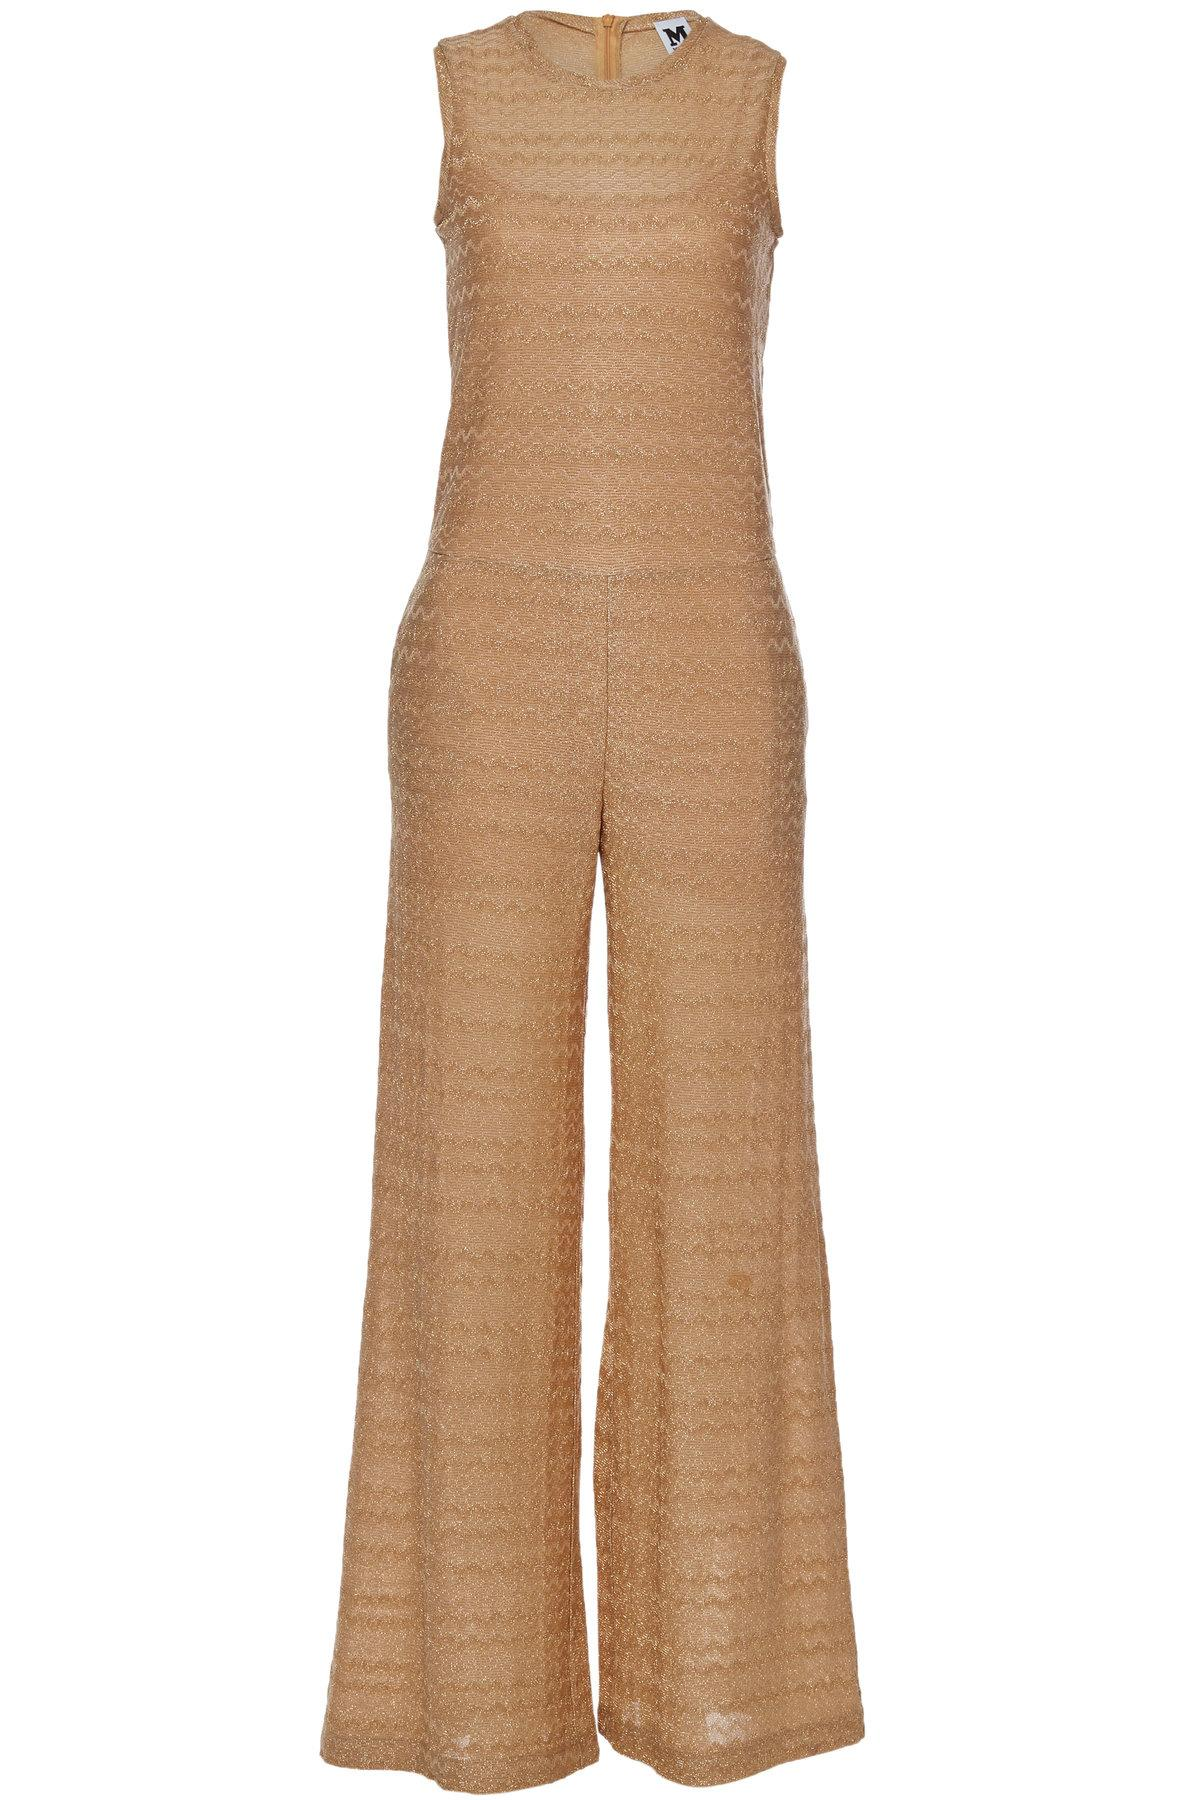 b2da2392e51d M Missoni Knit Jumpsuit With Cotton And Metallic Thread In Gold ...